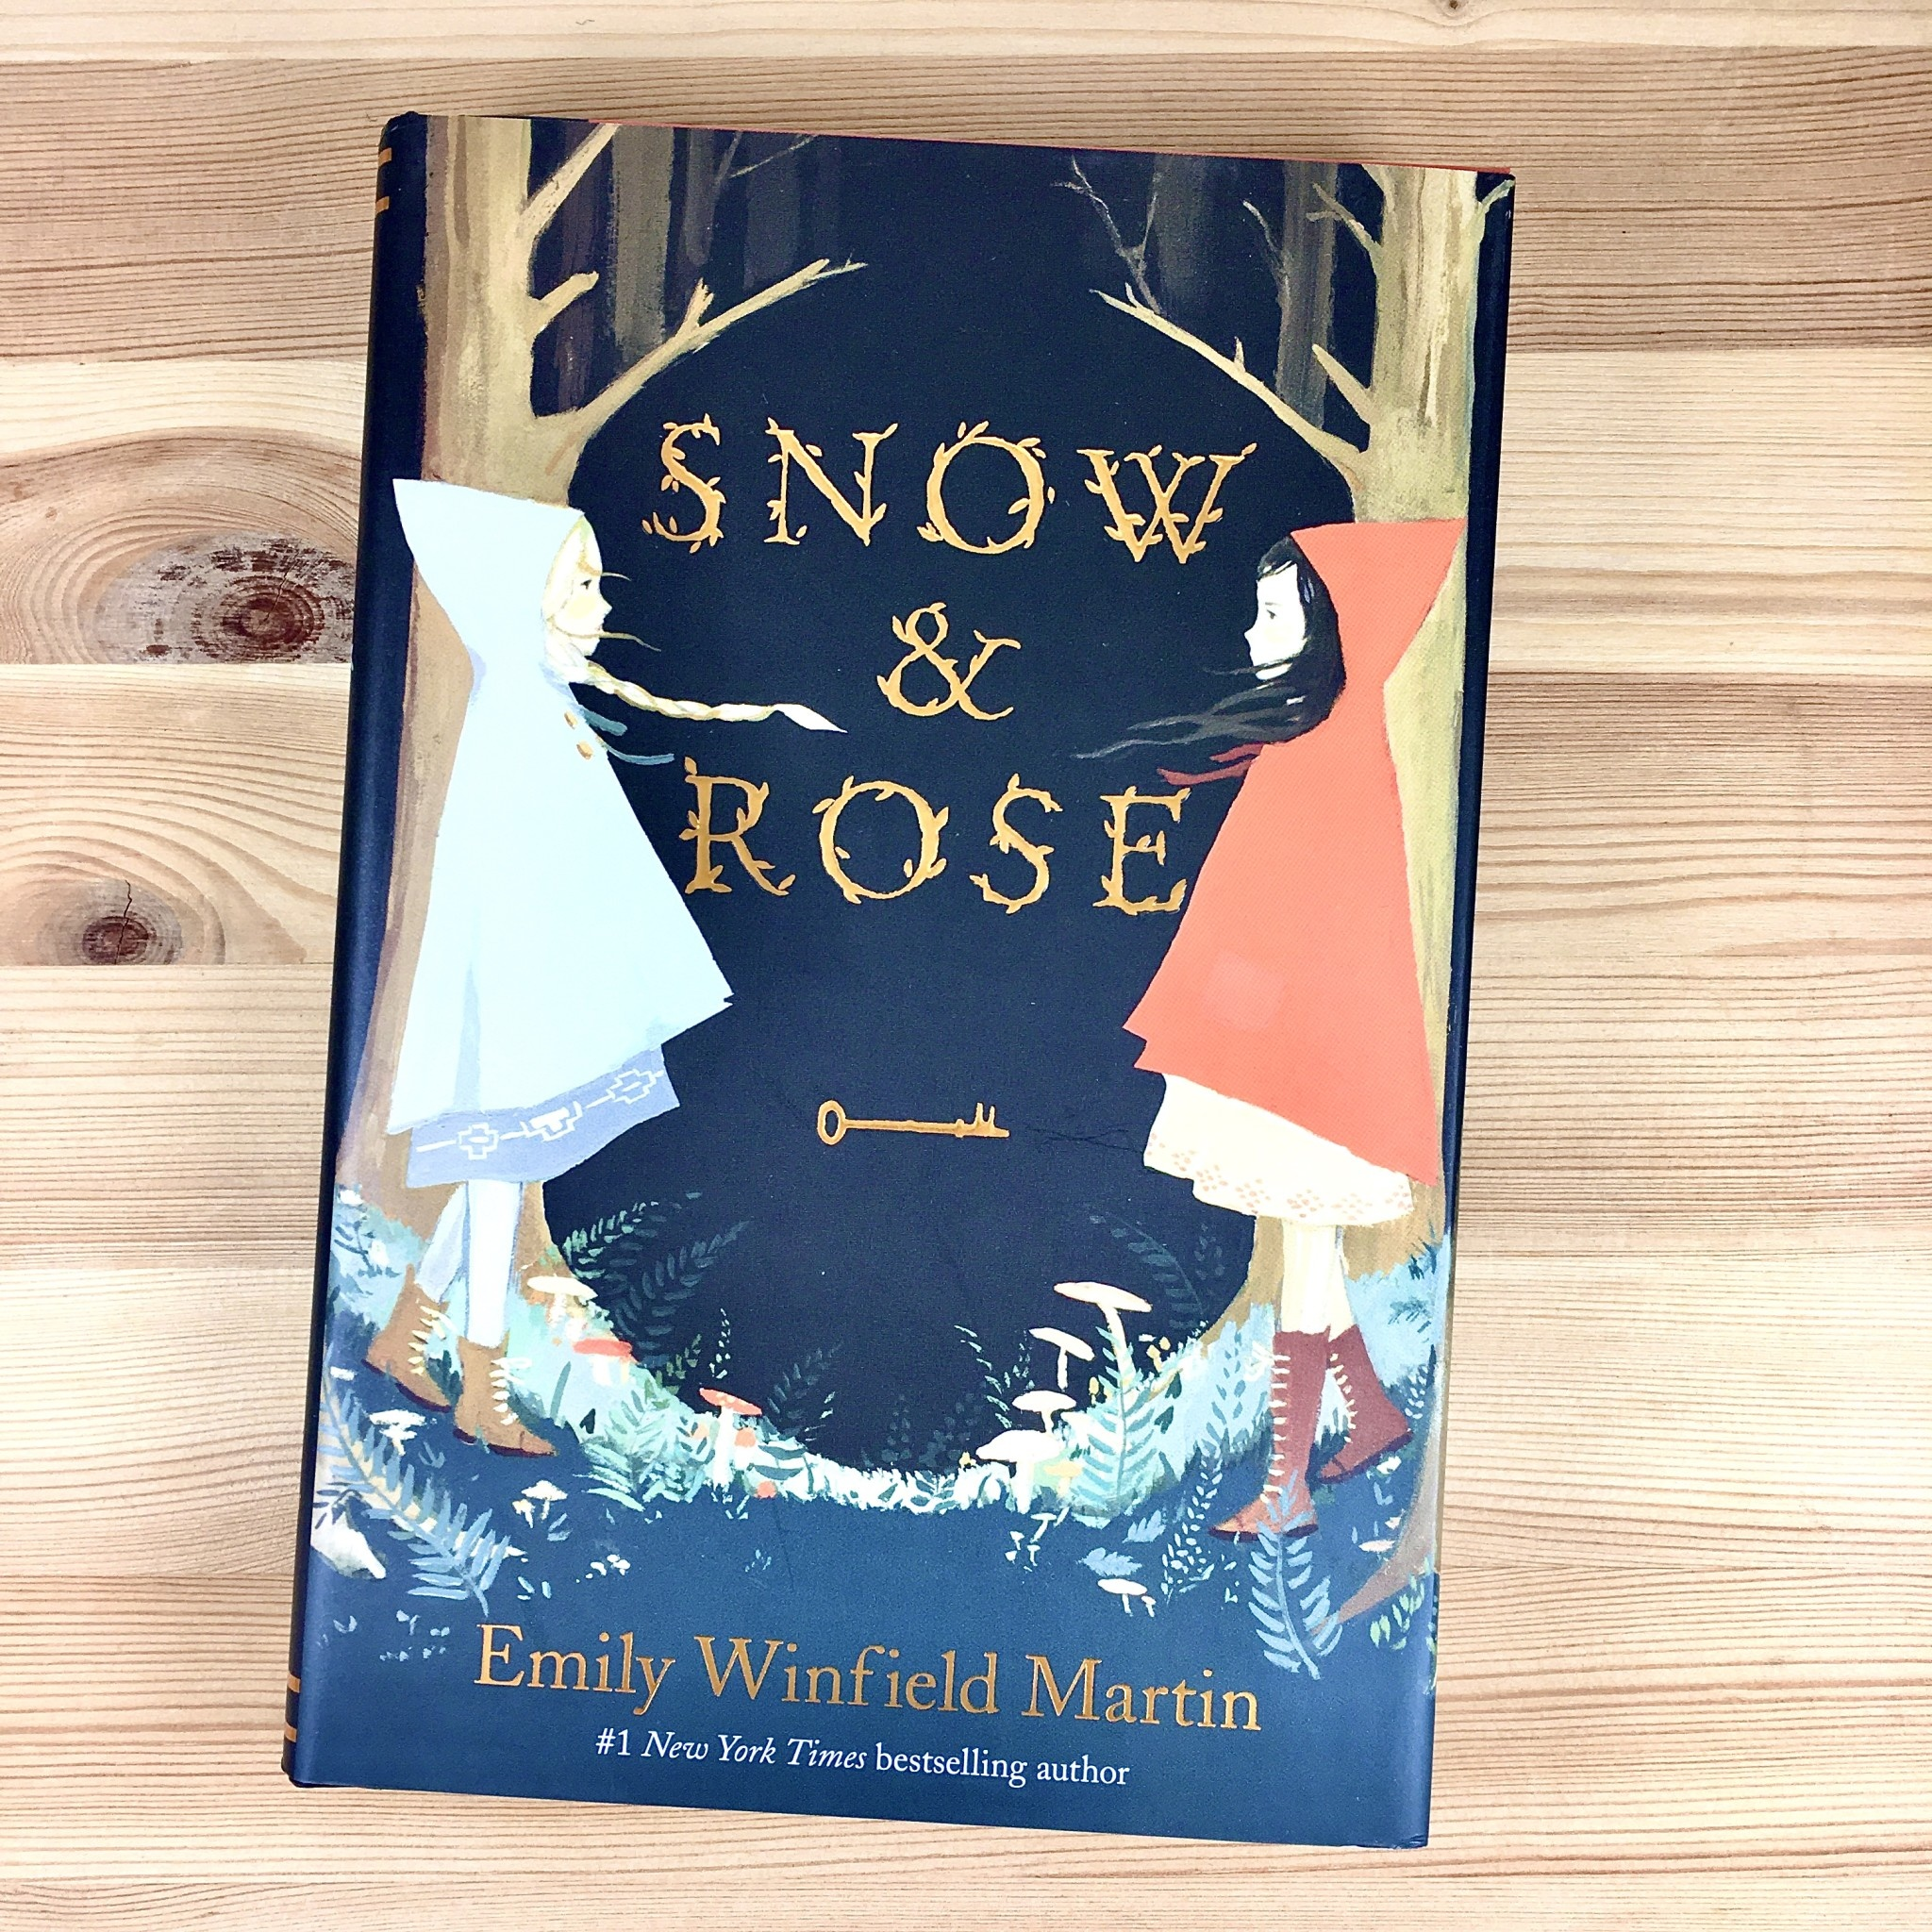 The Black Apple Snow & Rose Book - Emily Winfield Martin